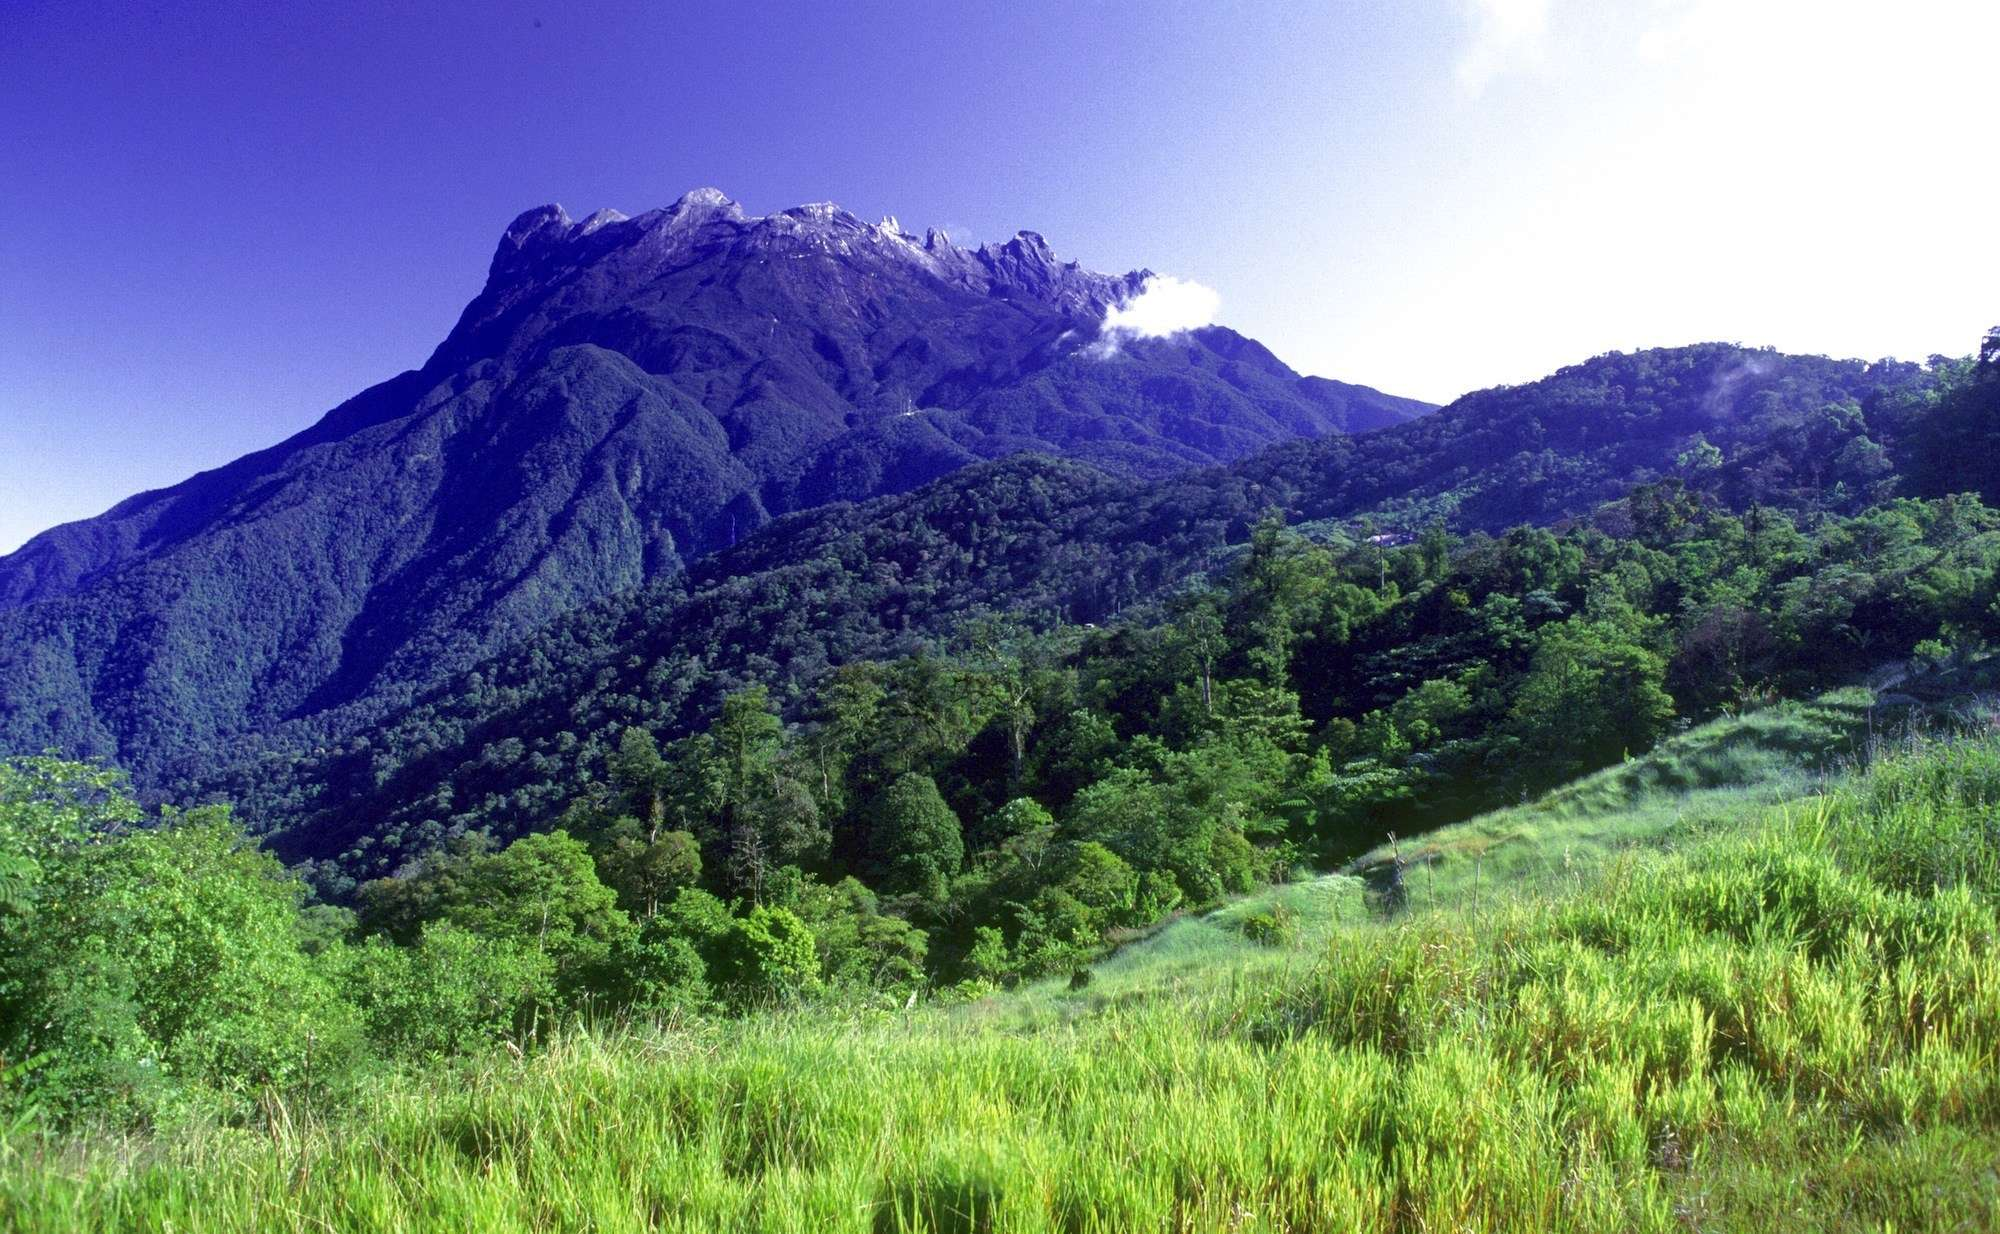 Kinabalu National Park, Kinabalu National Park: Must-Know Information and Guide, Phenomenal Place